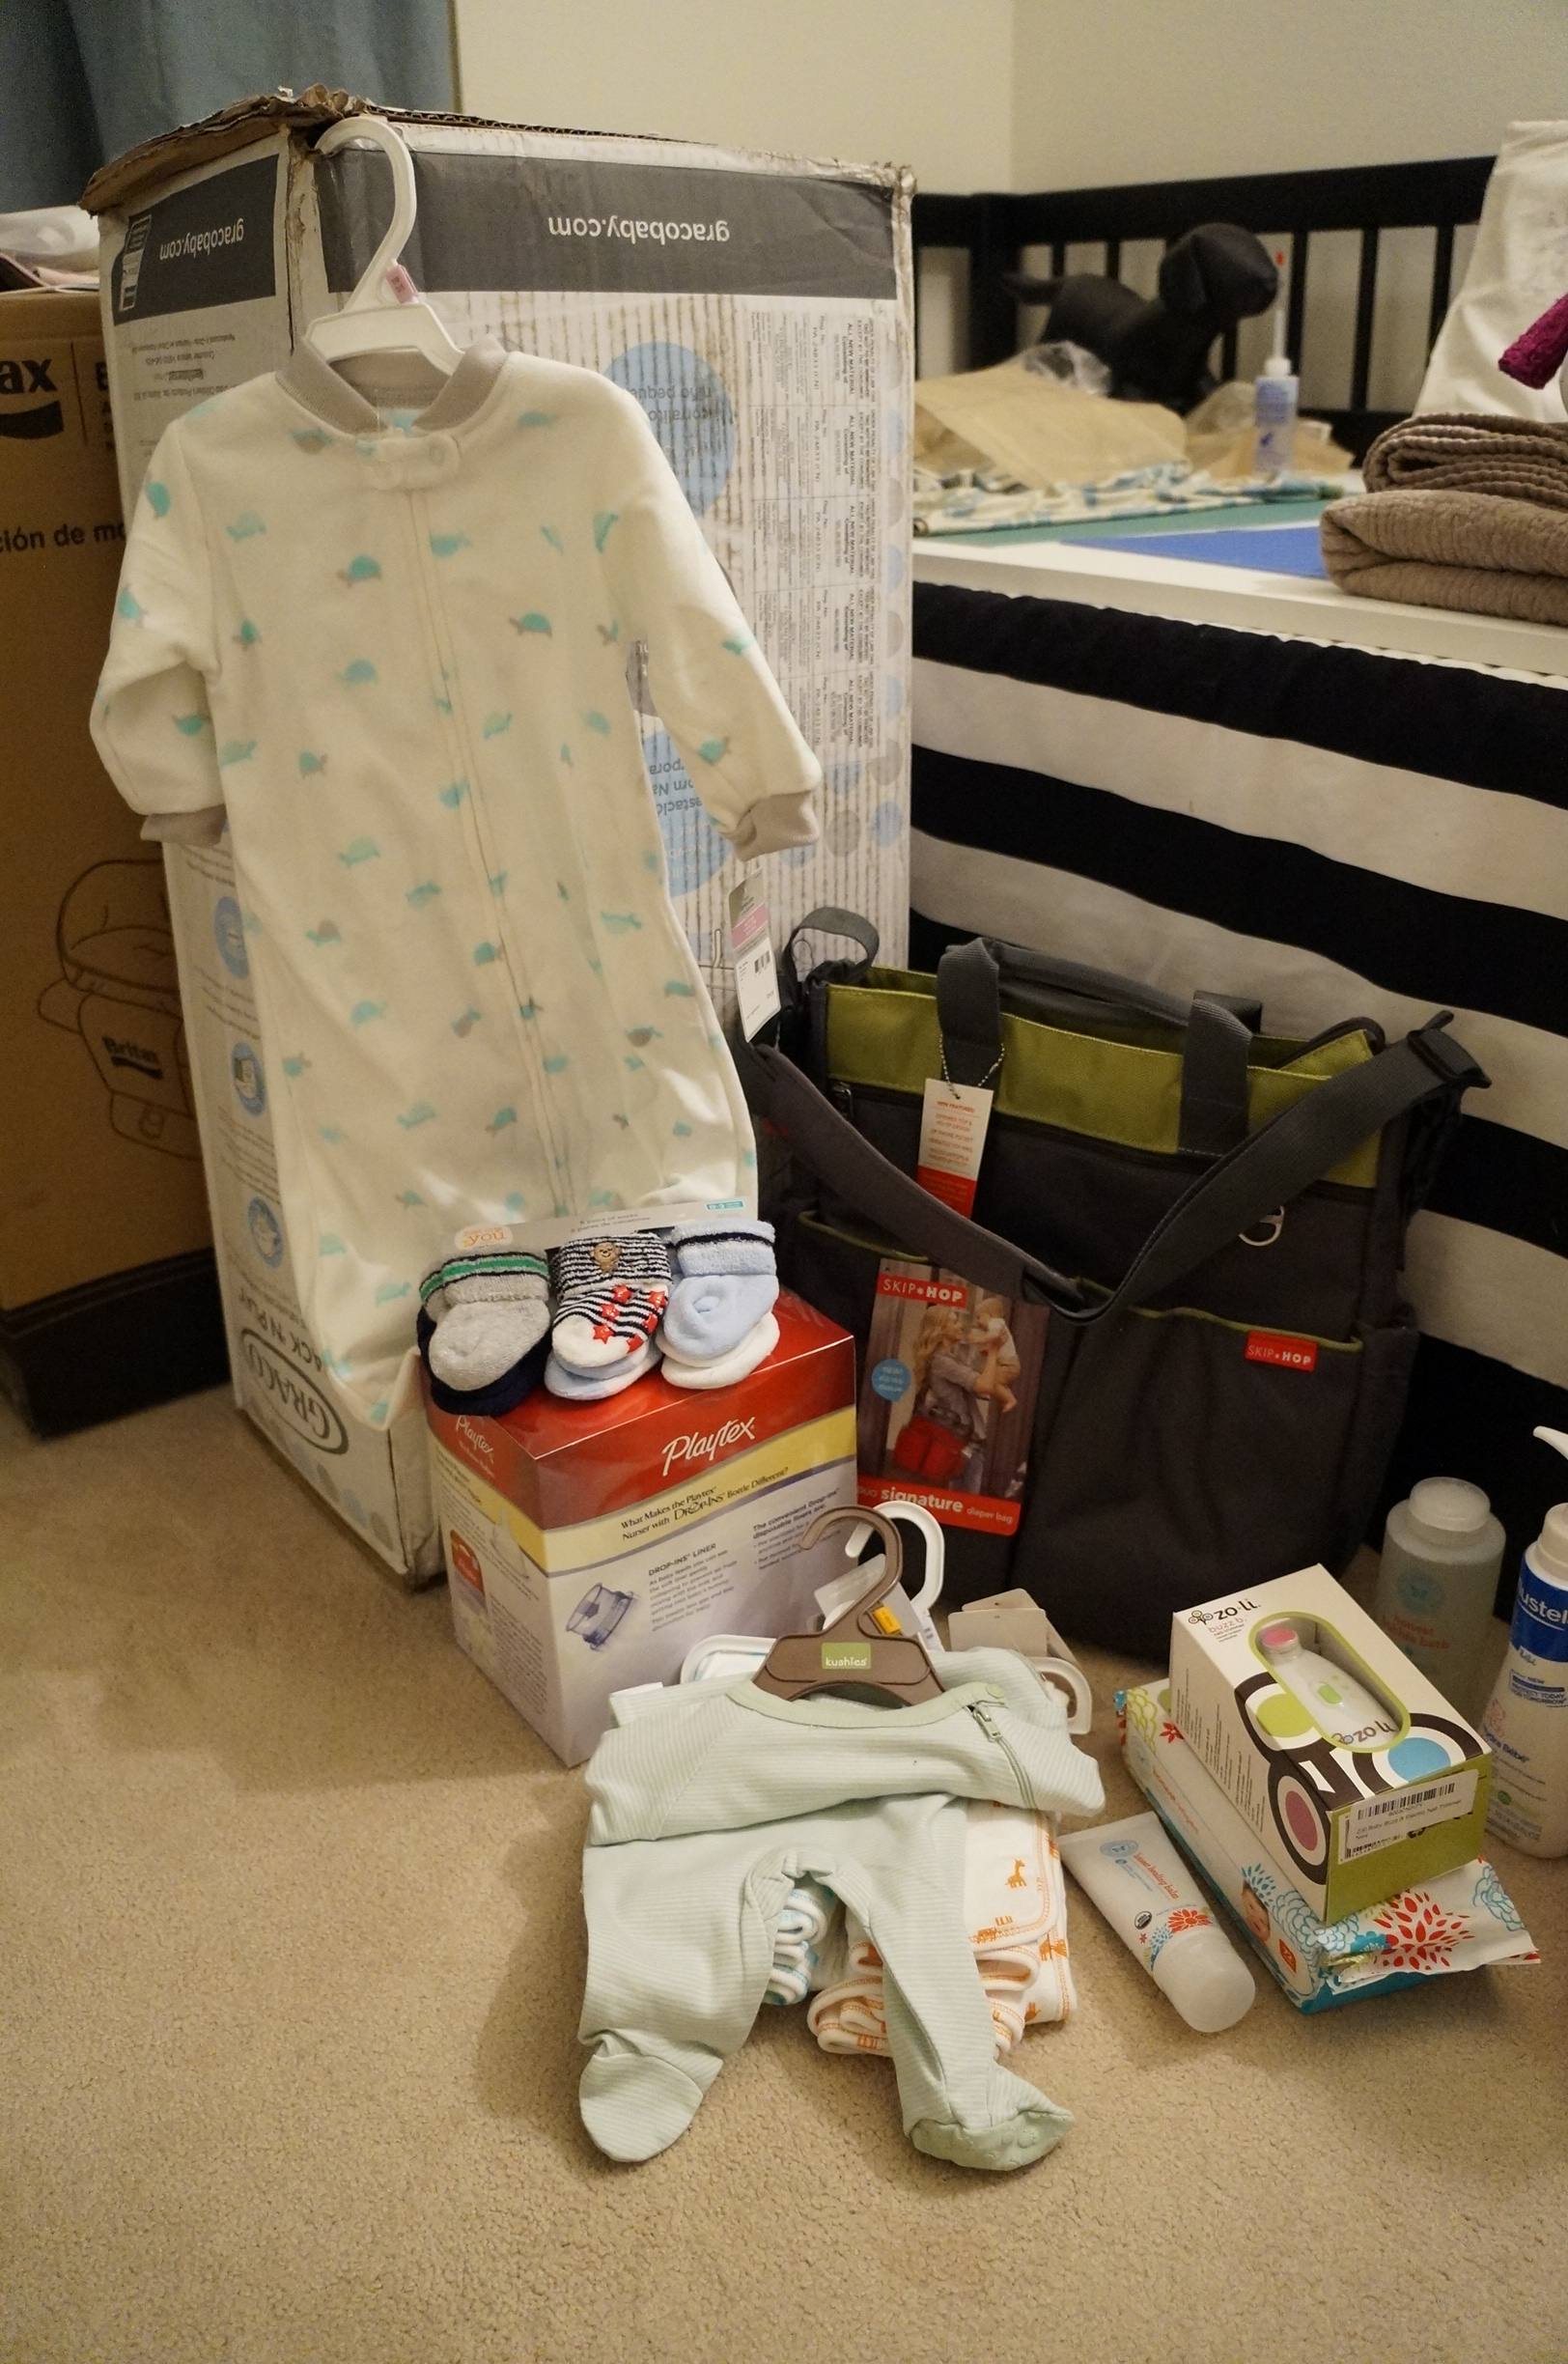 I thank my friends for avoiding pastel blue, and such practical gifts! I had coffee Saturday morning and I couldn't sleep after 2am, so I spent some time in the baby's room looking at each gift again. Can't wait to use them on the baby!